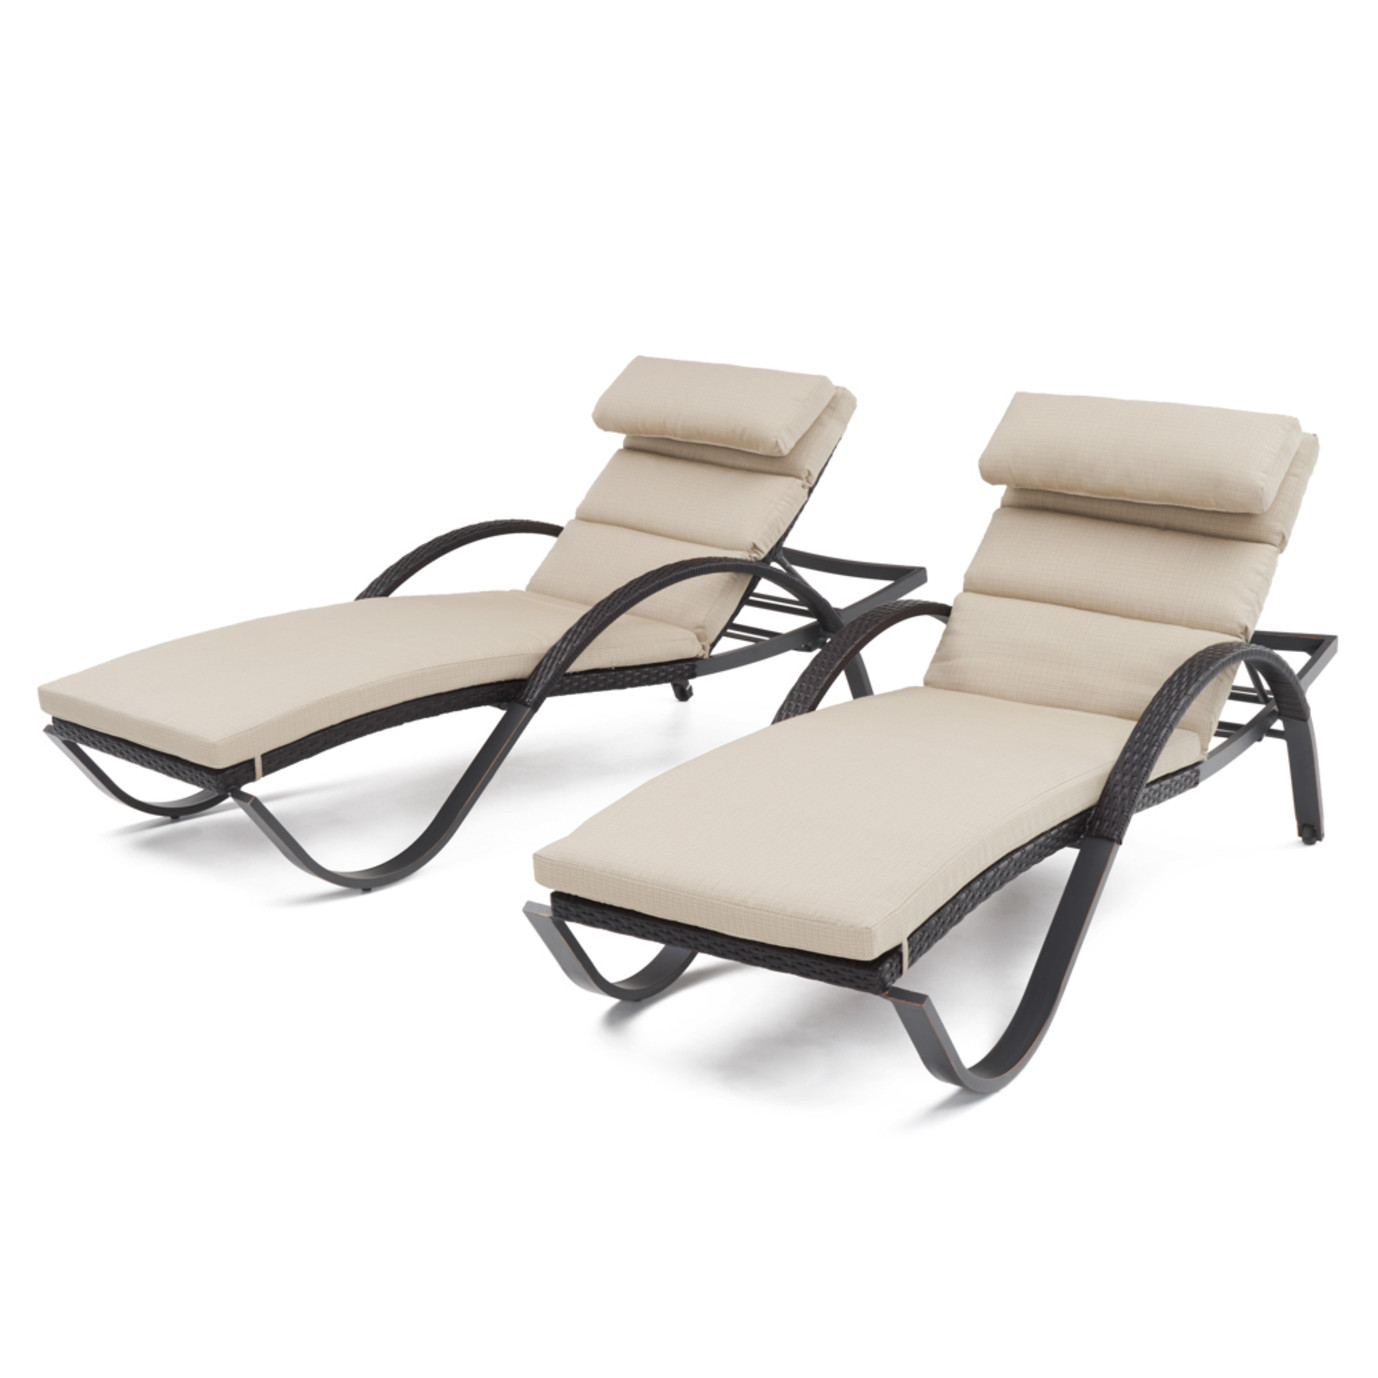 Deco™ Chaise Lounges with Cushions - Slate Grey